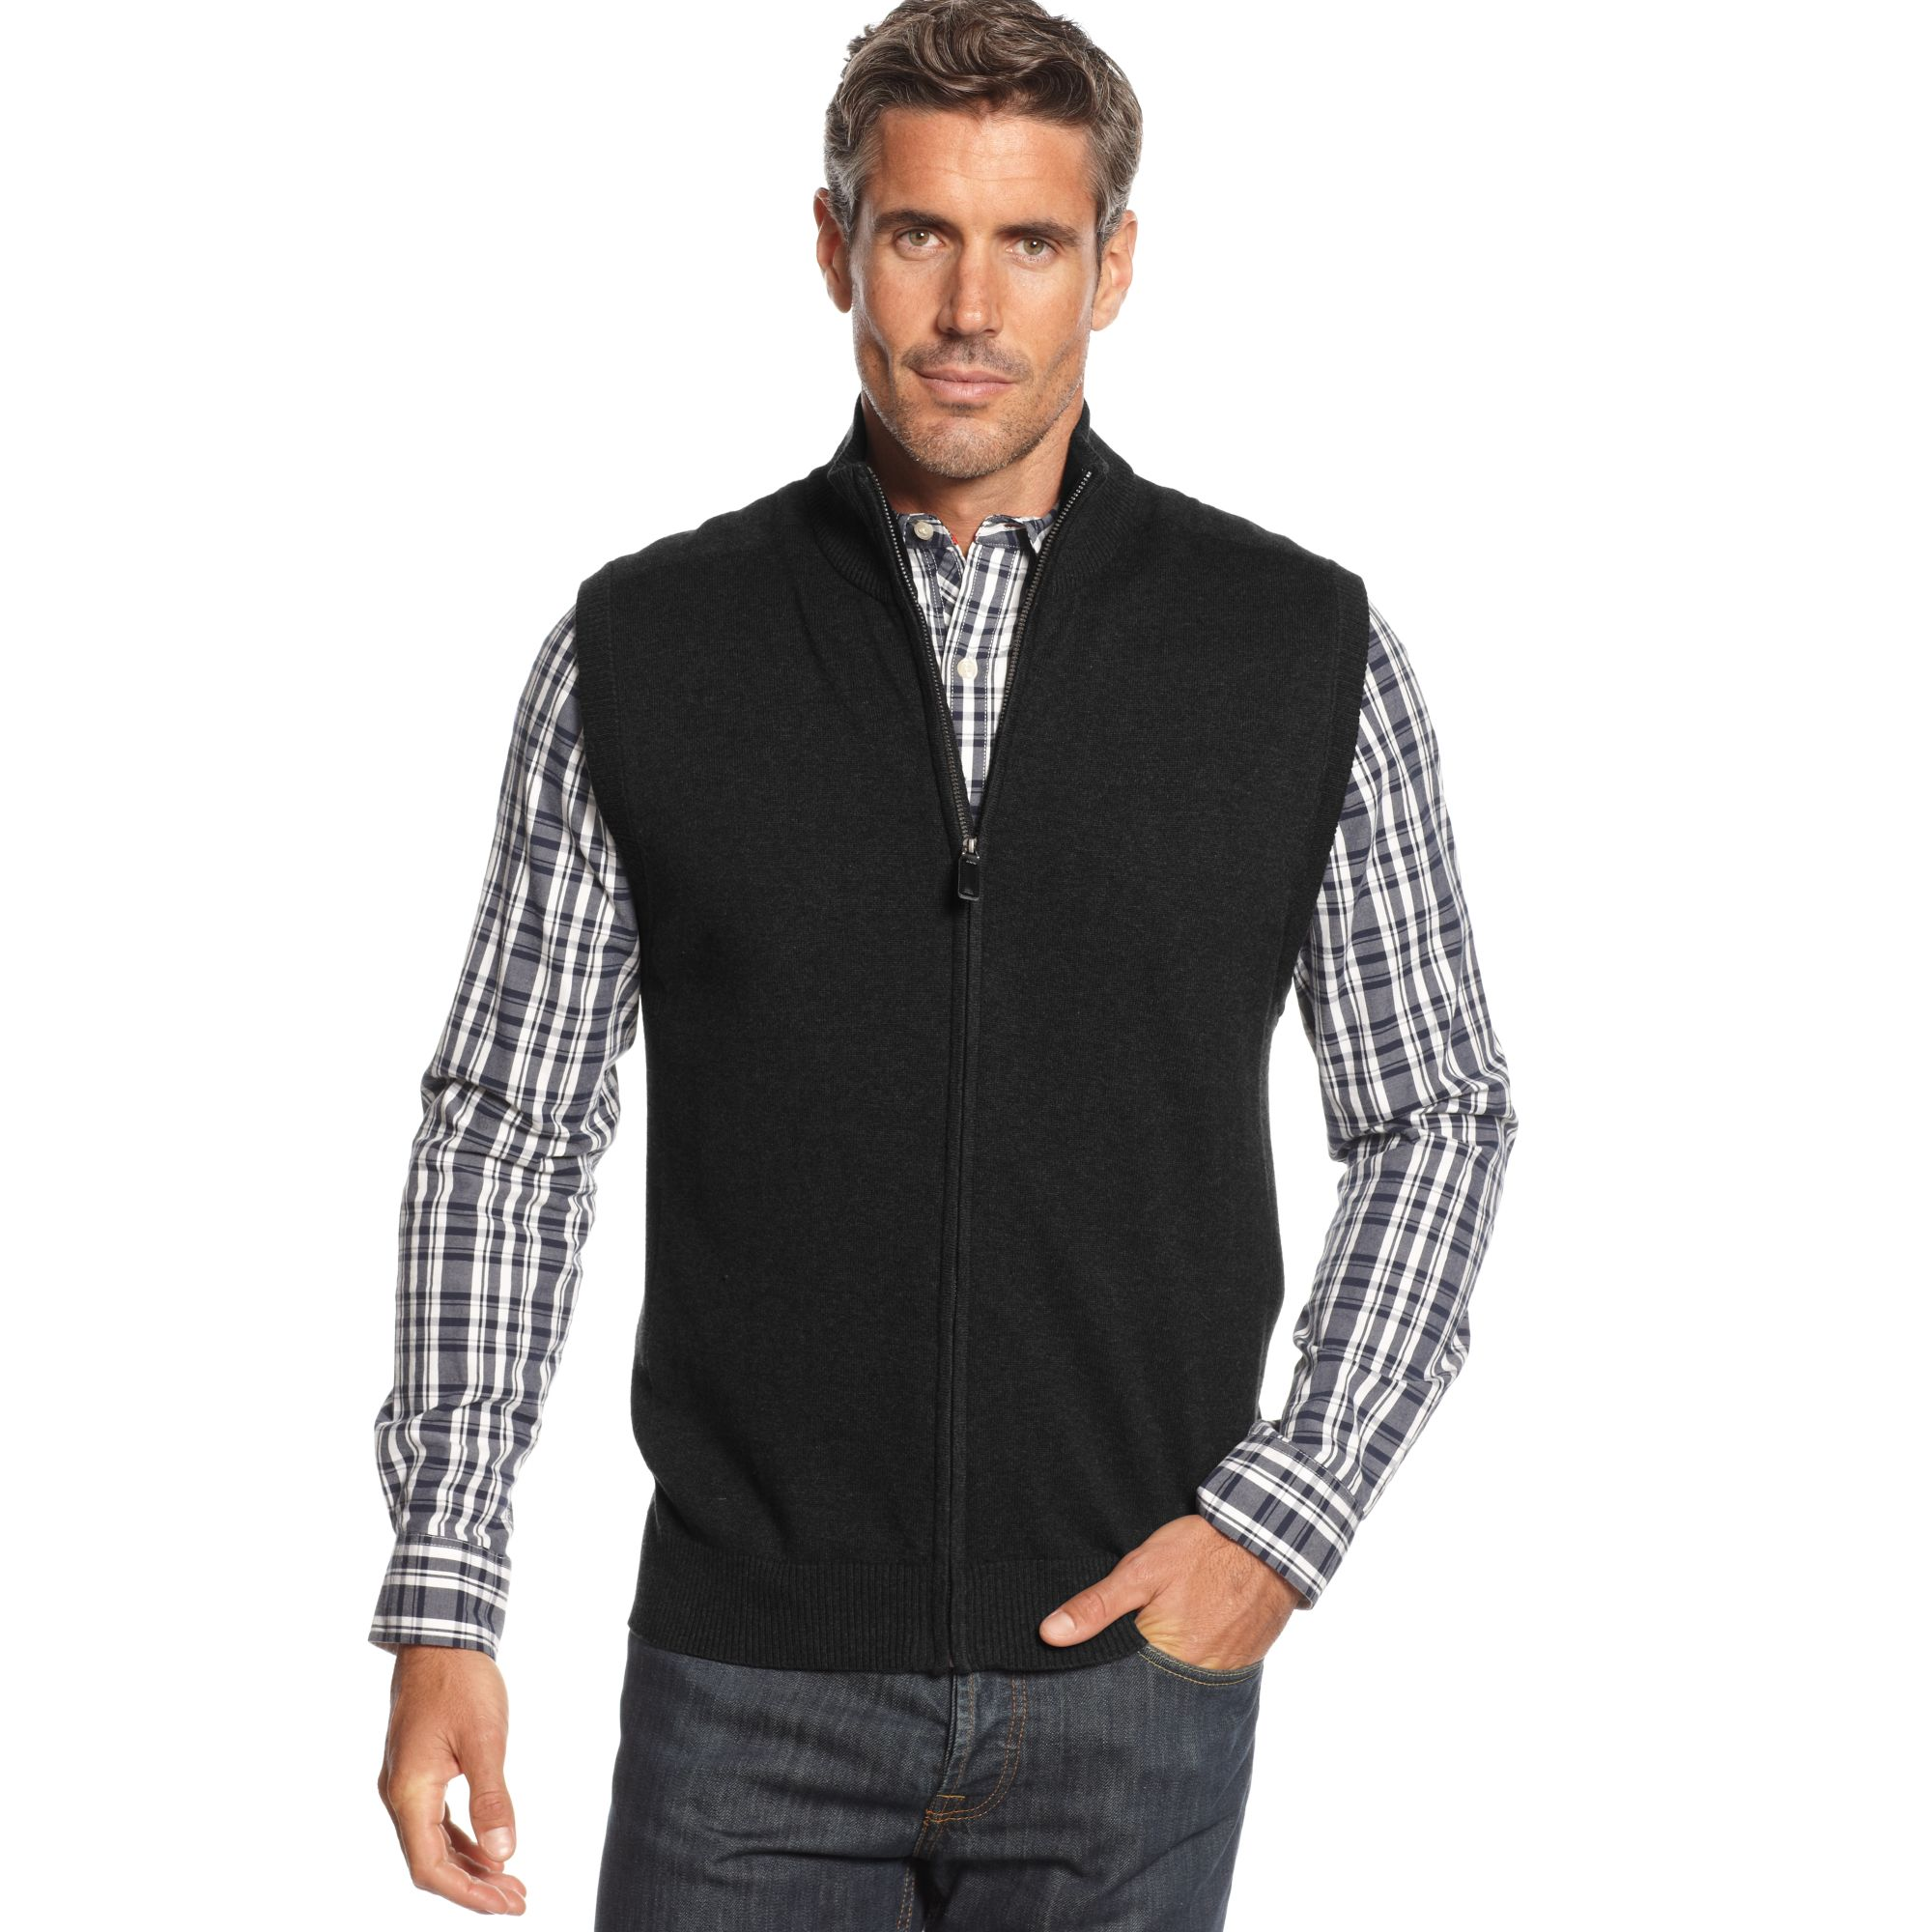 Black Sweater Vest Men - Cardigan With Buttons